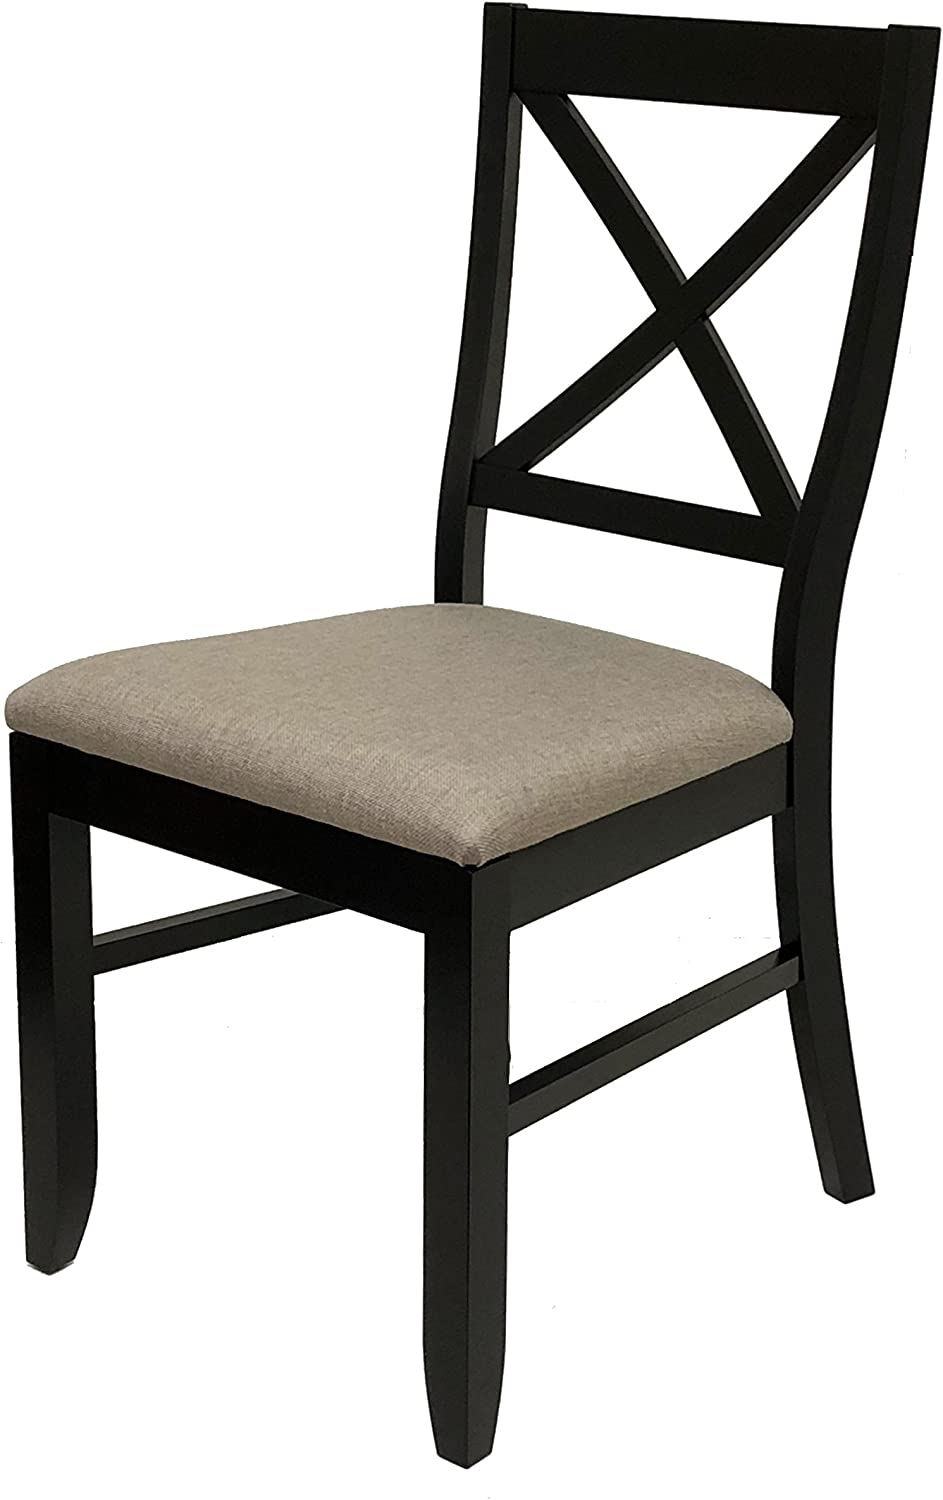 Everhome Designs – Lara Solid Wood Cross Back Dining Side Chair Set of 2 Espresso